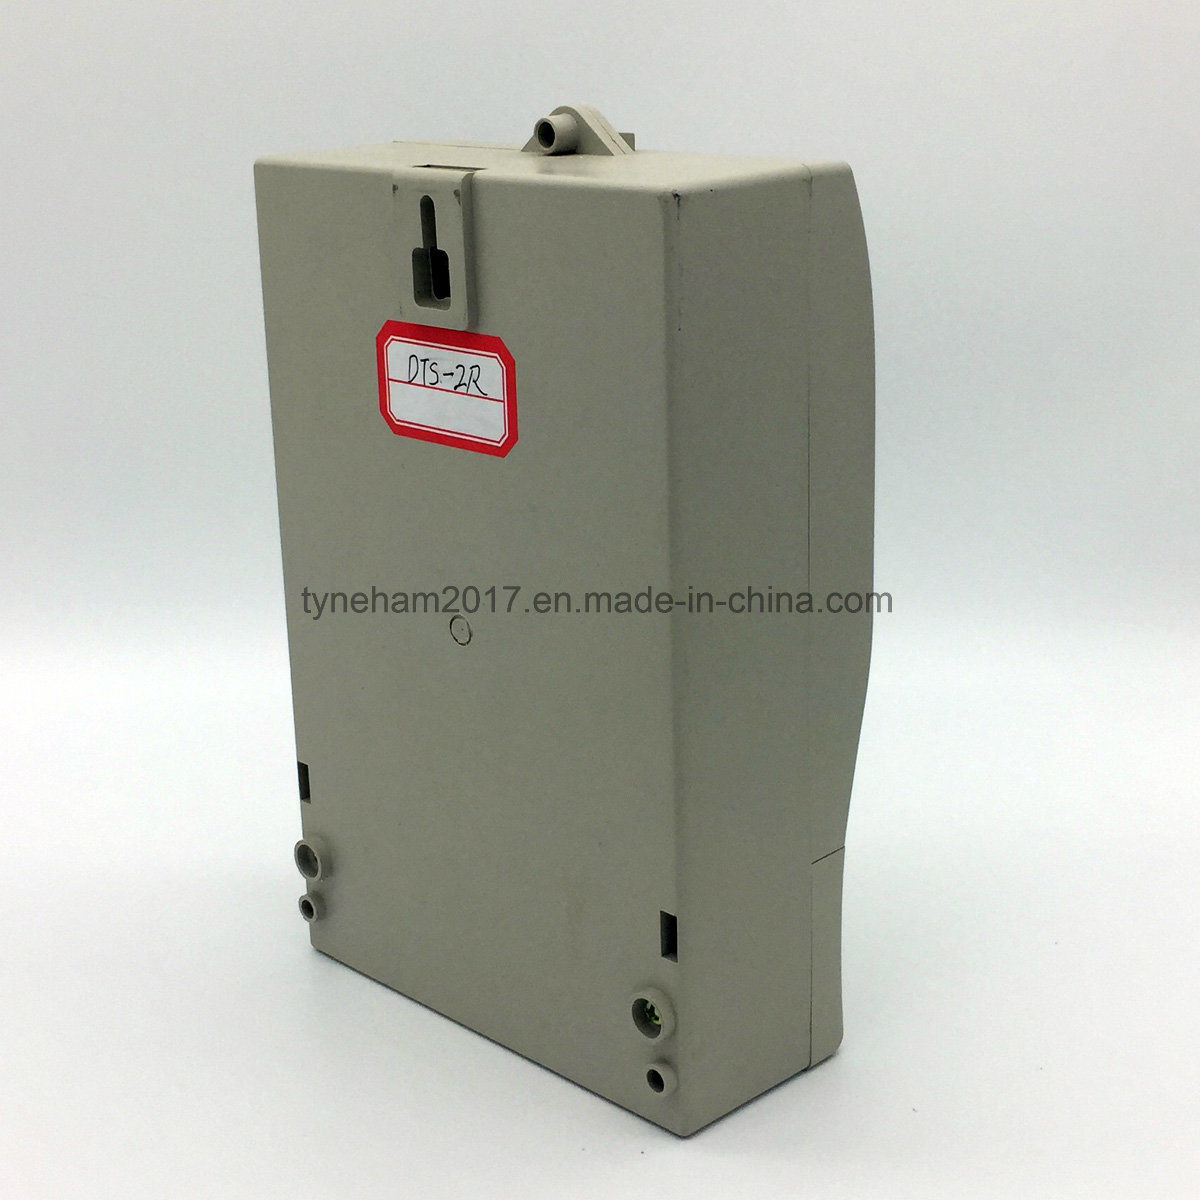 Dts-2r Three Phase Four Wire Kwh Meter